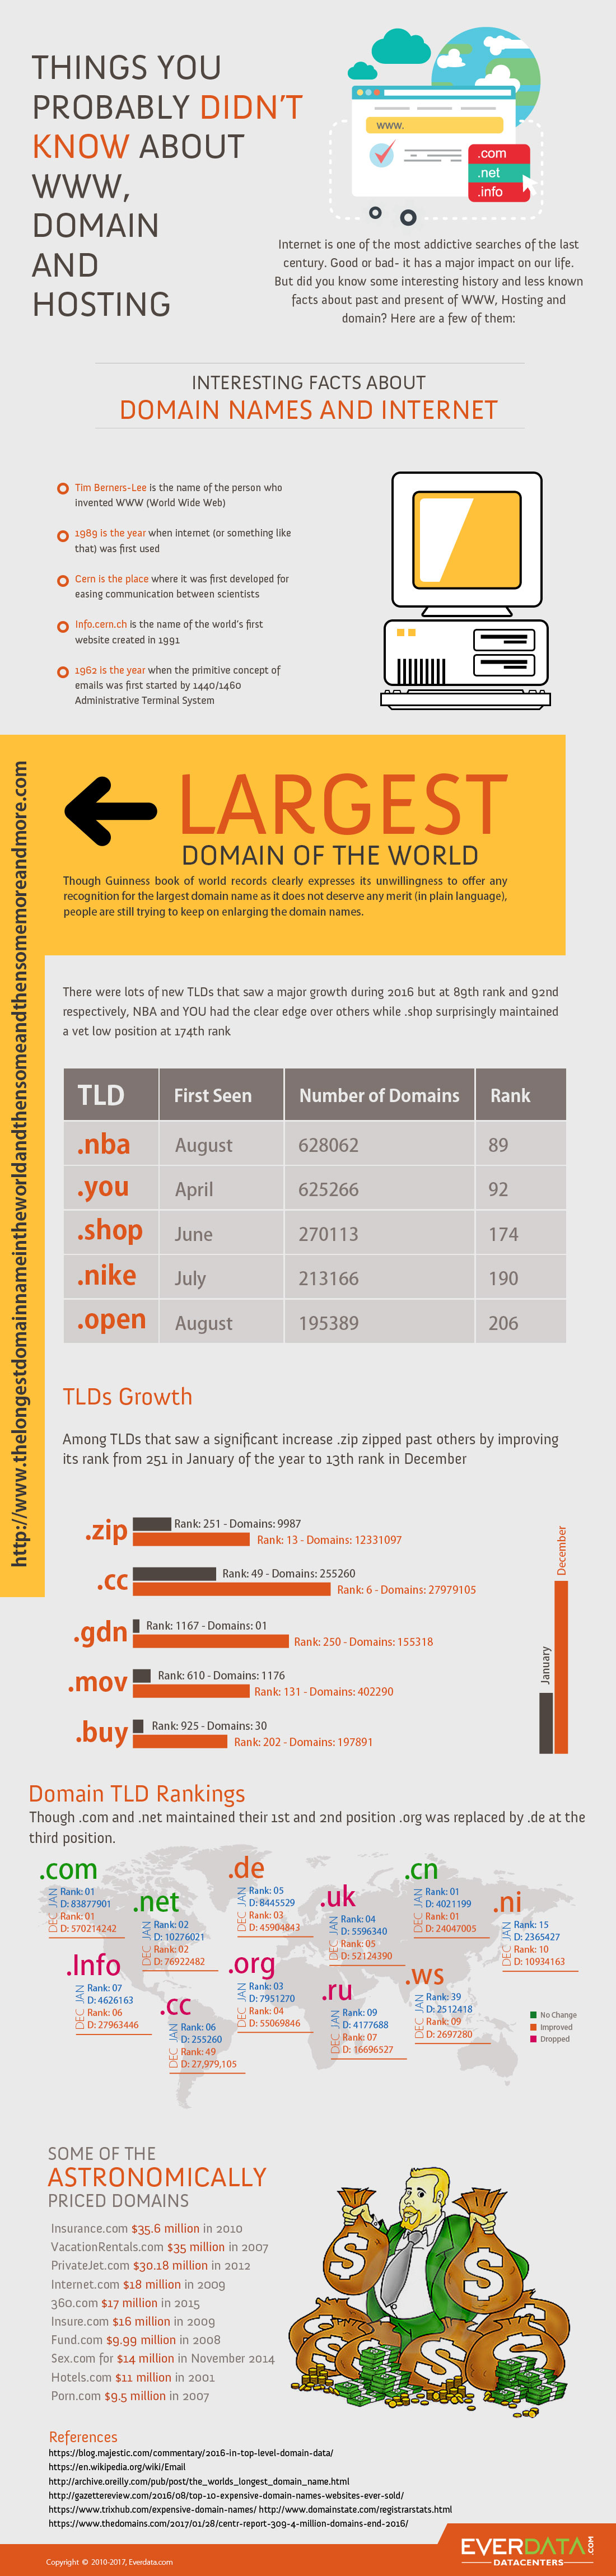 Infographic - Things you probably didn't know about WWW, domain and hosting